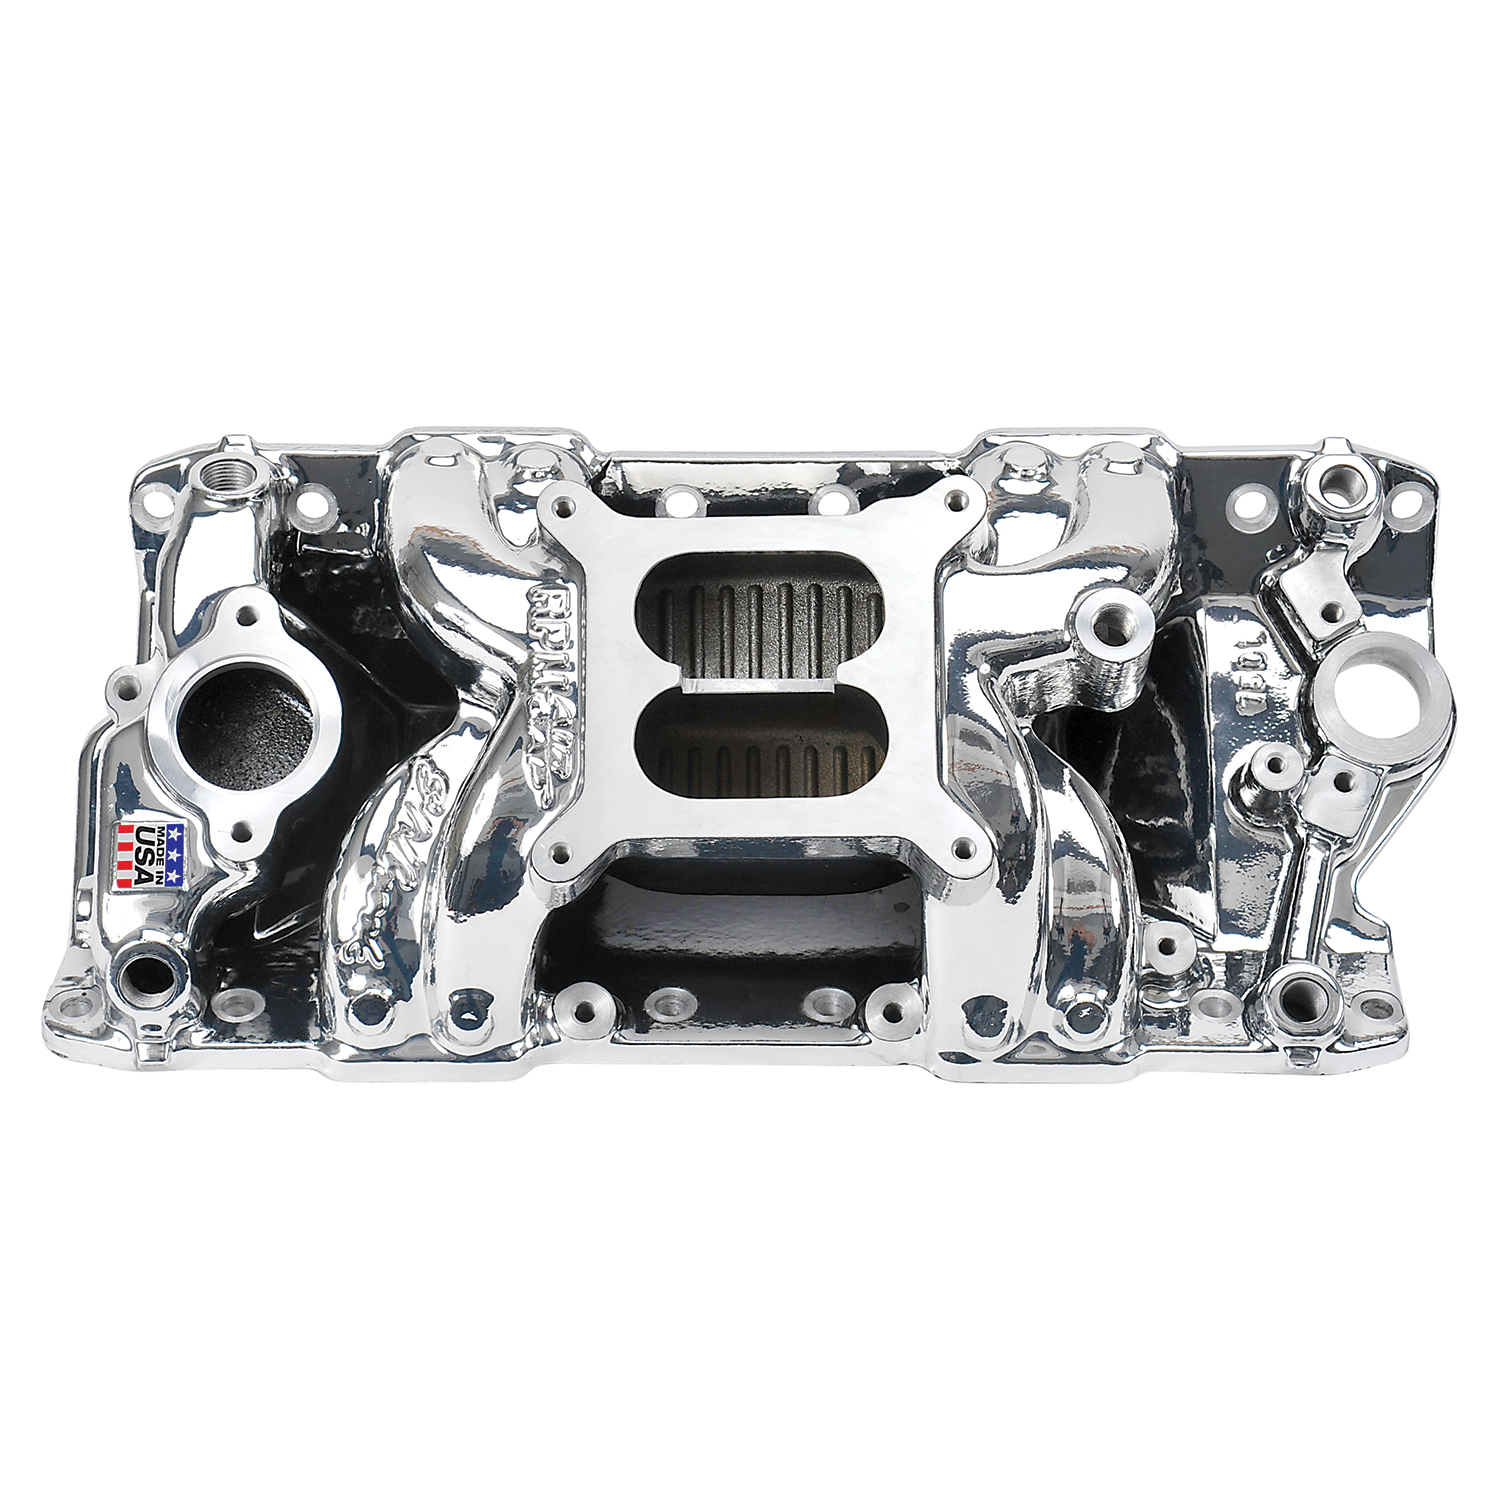 Air & Fuel Delivery > Intake Manifolds & Components – pi